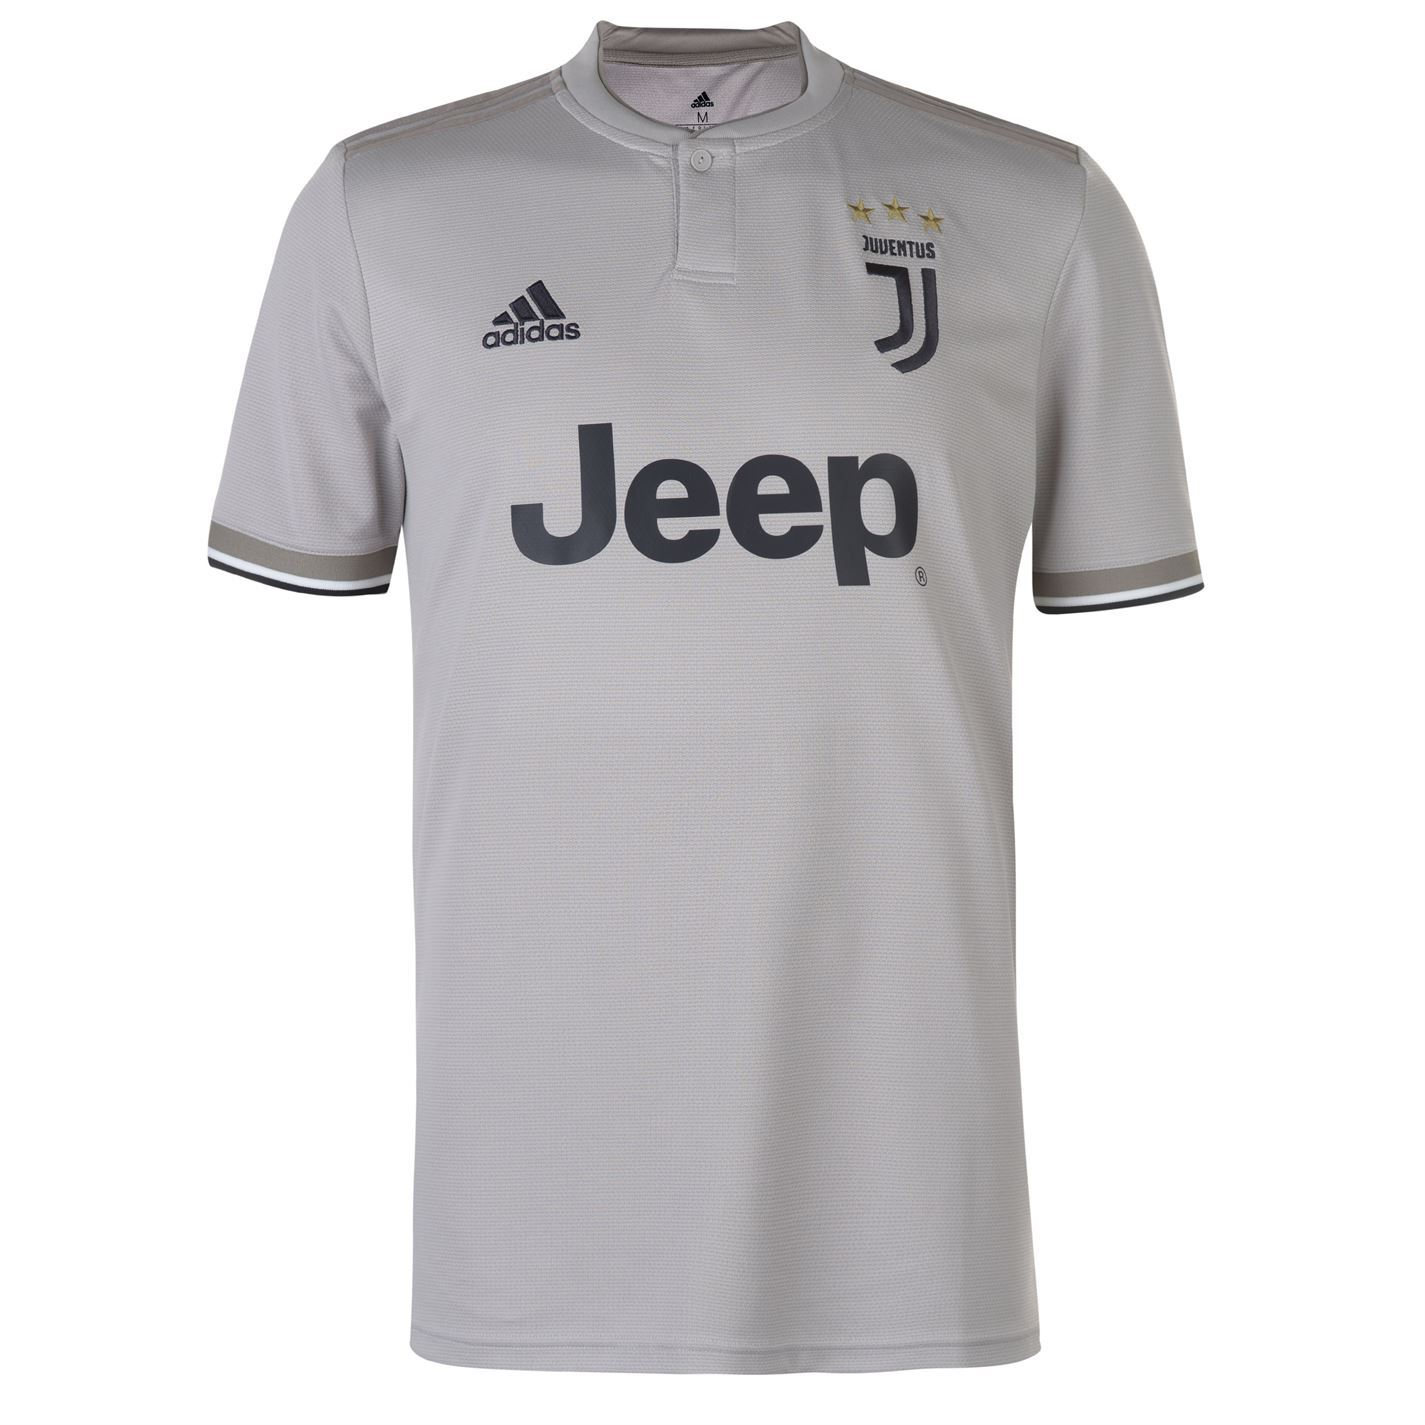 a3a165e11 ... adidas Juventus Away Jersey 2018 2019 Mens Grey Football Soccer Fan  Shirt Top ...